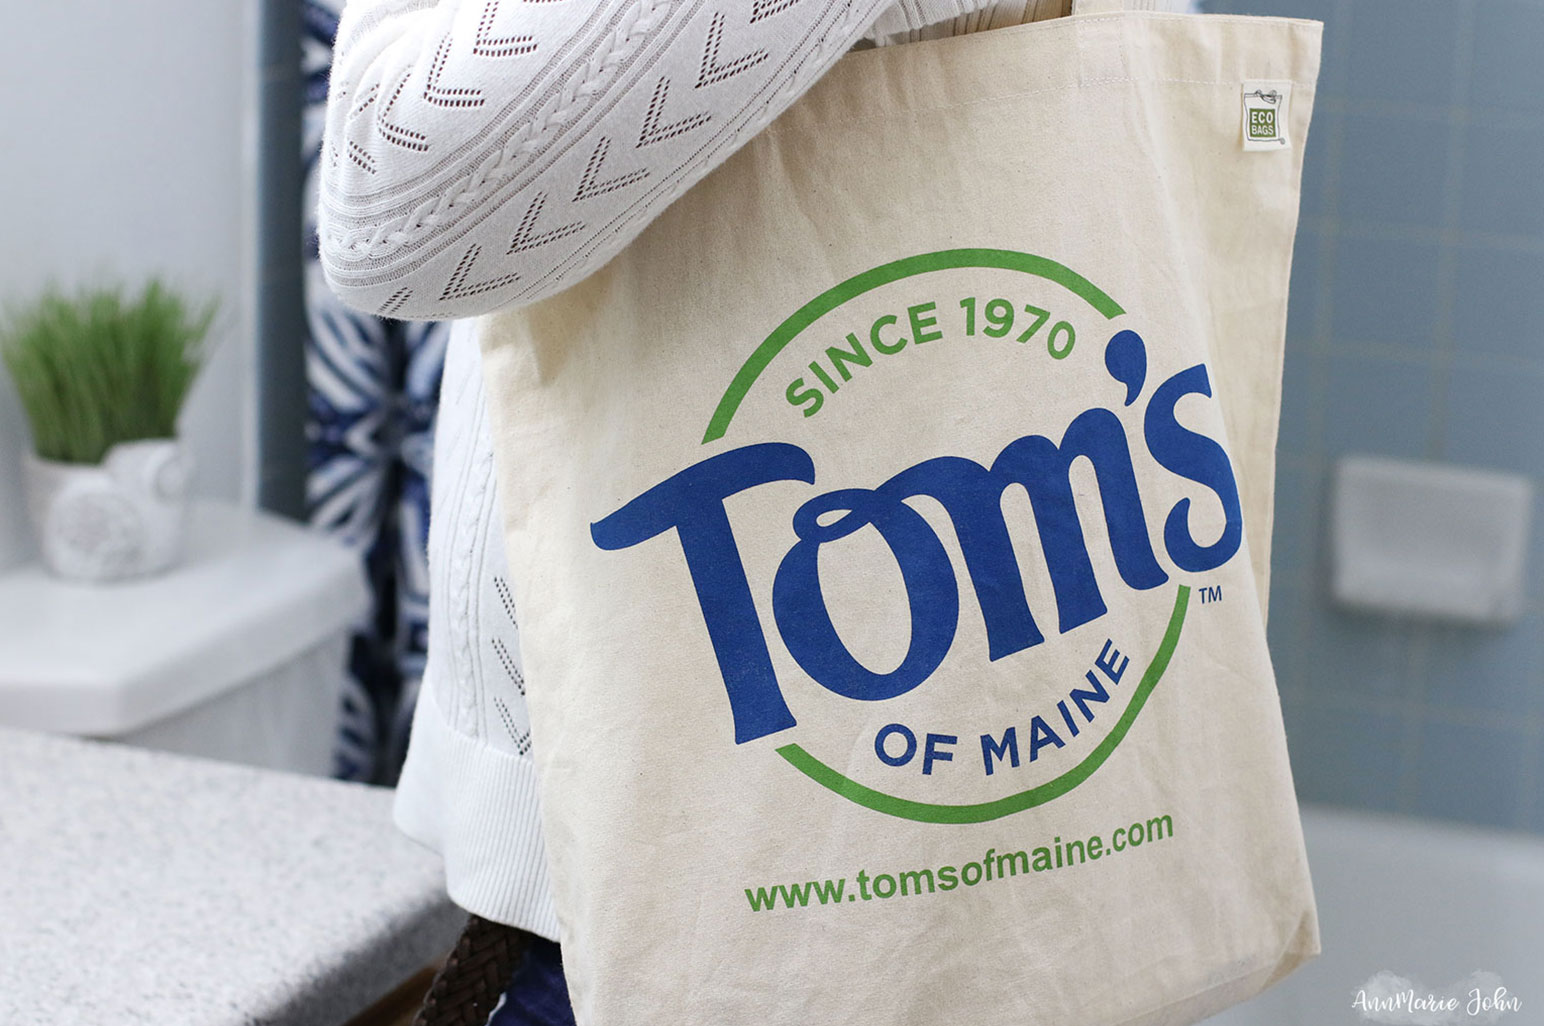 How to Model Good Hygiene for Your Kids With Tom's of Maine ~ #WhyISwitched